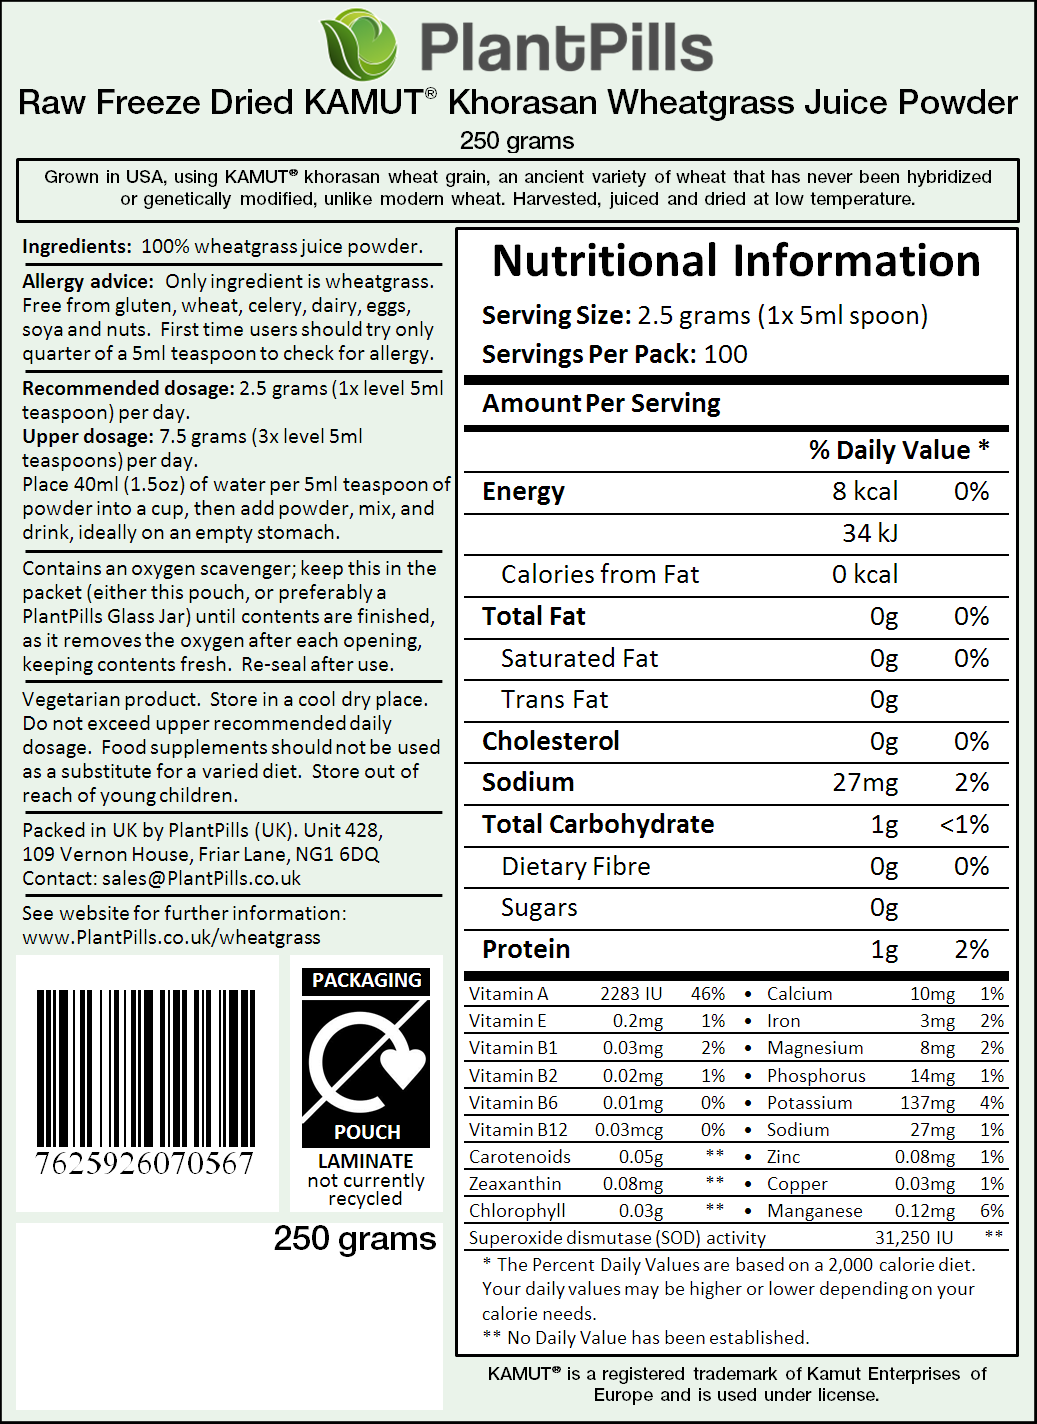 Raw Field Grown Freeze Dried Kamut® Wheatgrass Juice Powder Label